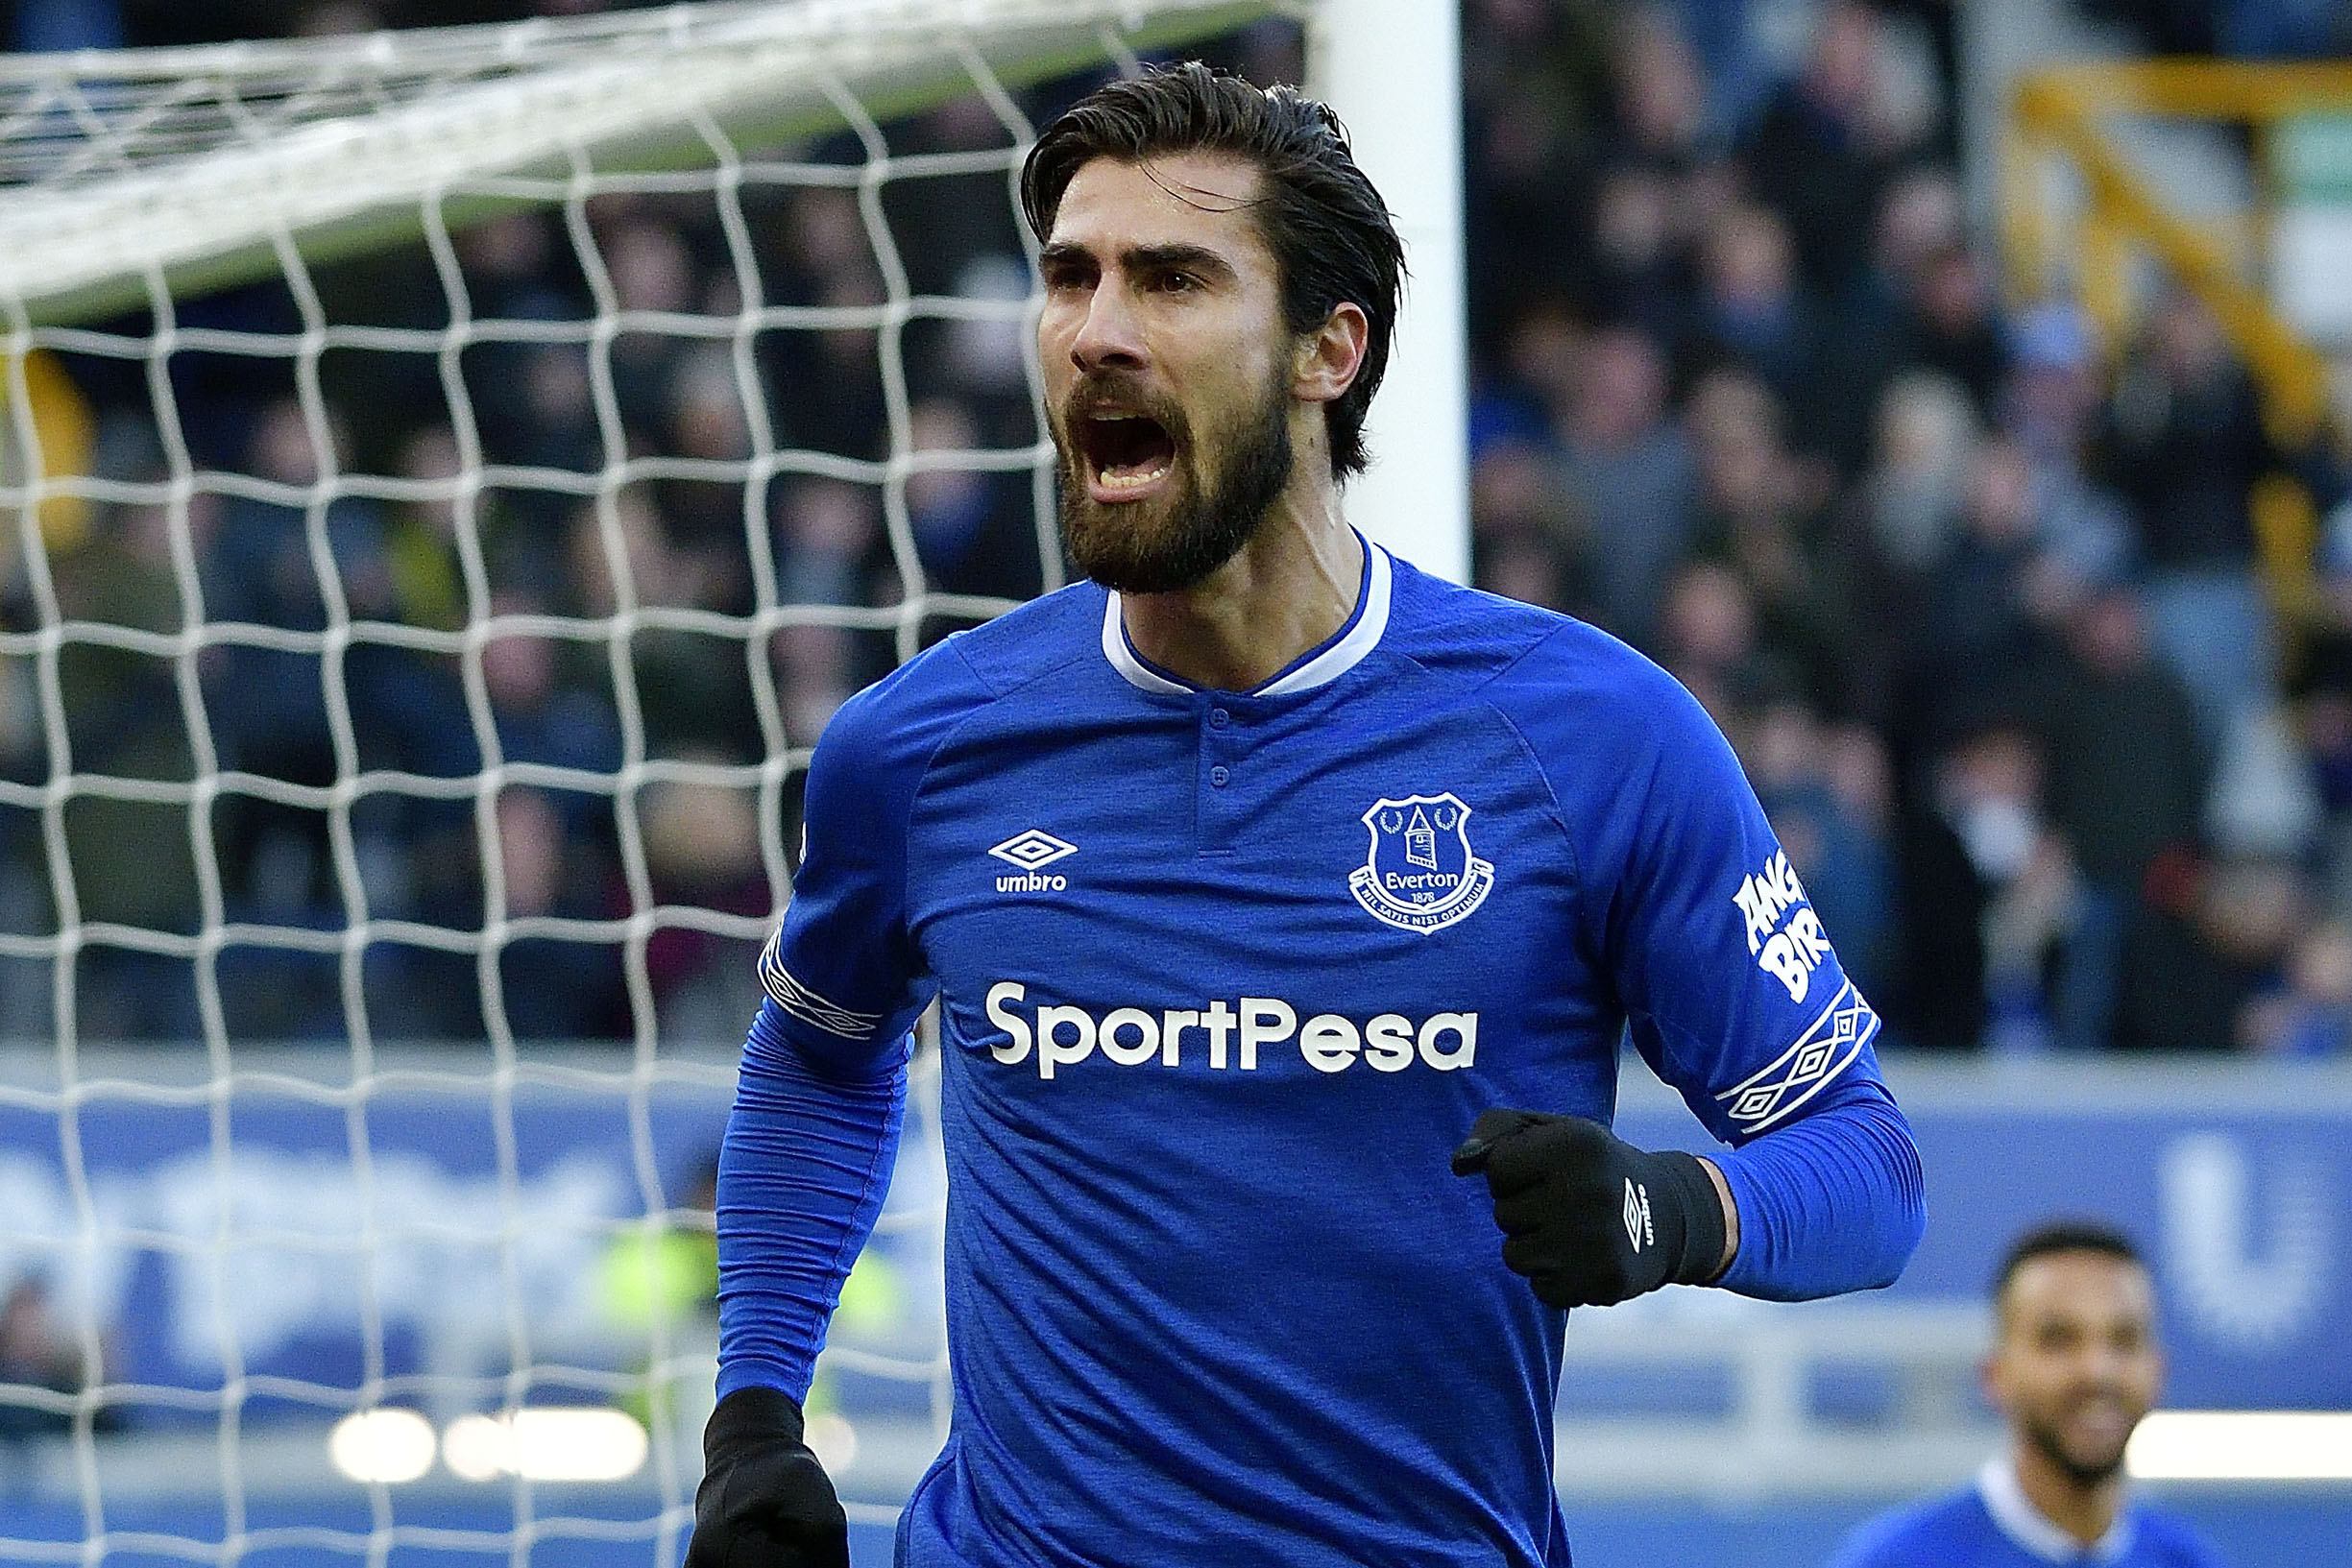 Andre Gomes joins Everton in £22m deal